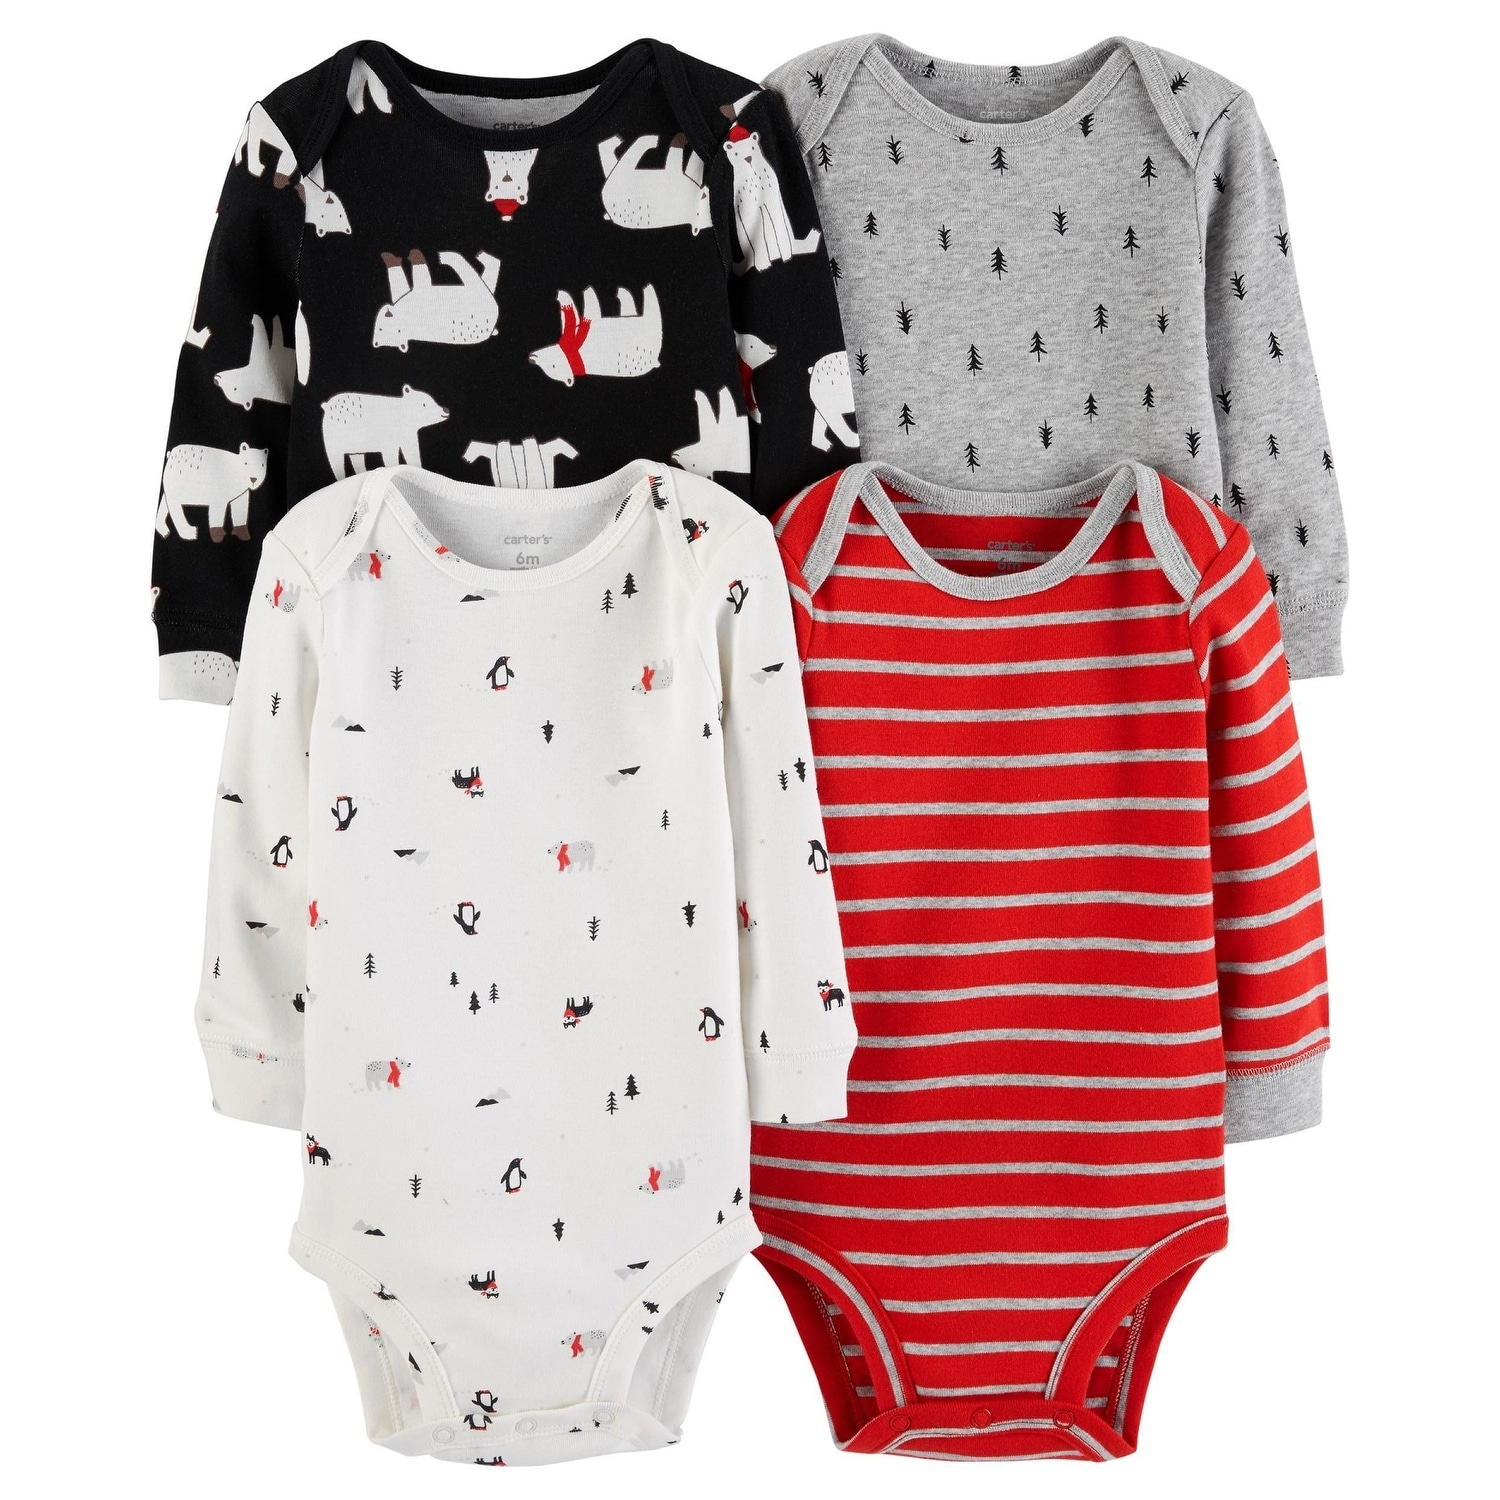 f620e356e7fa3 Size 0 - 3 Months Boys' Clothing | Find Great Baby Clothing Deals Shopping  at Overstock